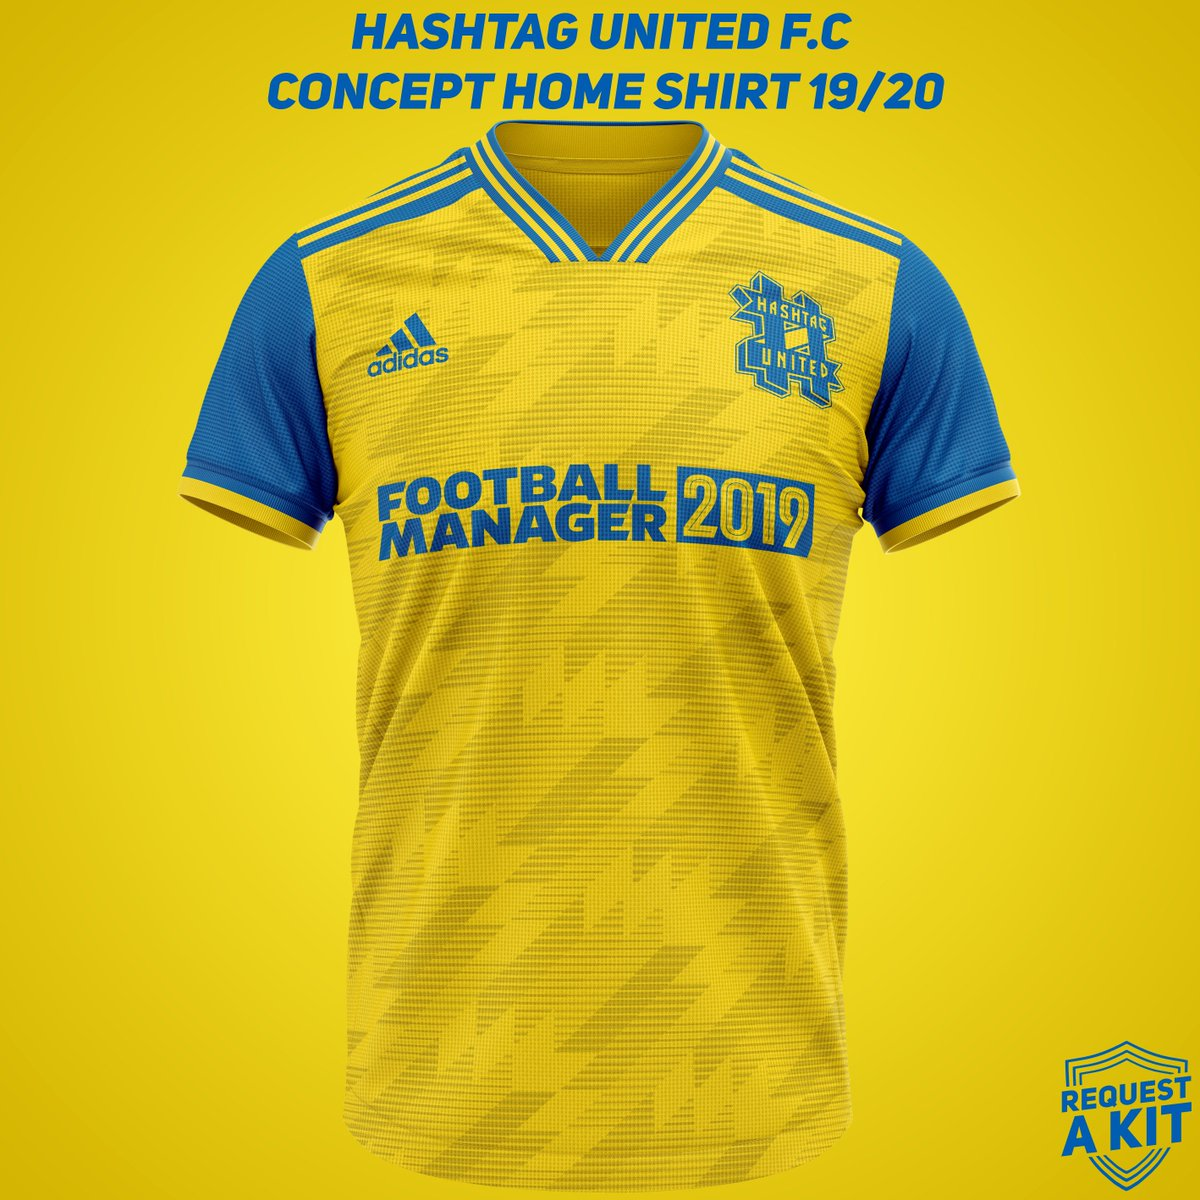 8339b9f58 Hashtag United F.C Concept Home and Away shirts 2019-20 (requested by   InTheMixer FM)  HereToCreate  FM19  WeAreTheCommunity Download for your  Football ...